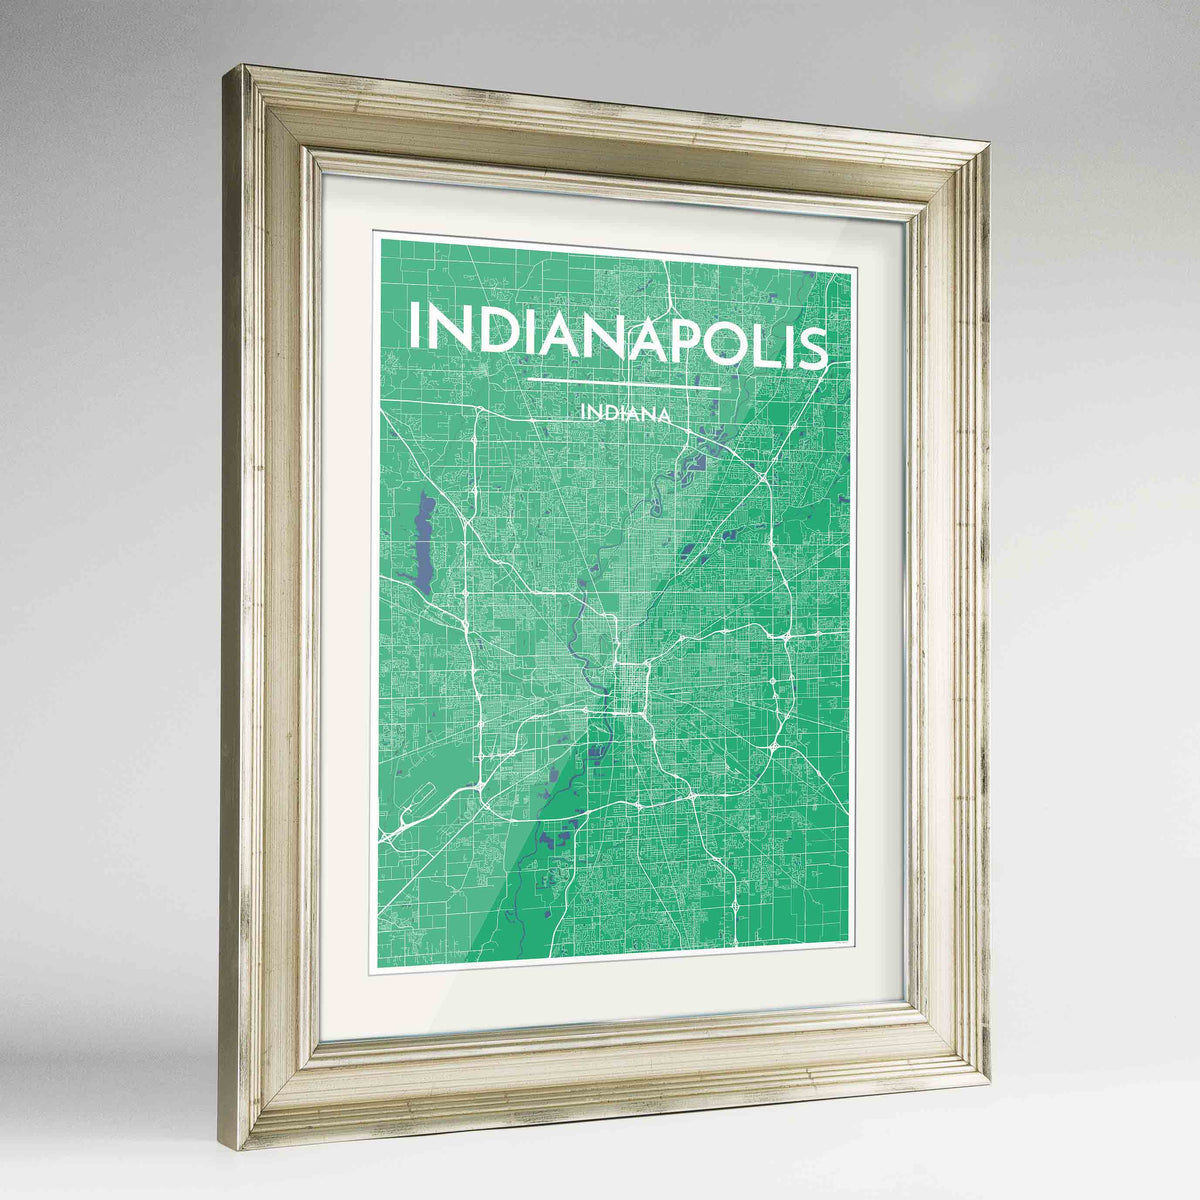 "Framed Indianapolis Map Art Print 24x36"" Champagne frame Point Two Design Group"